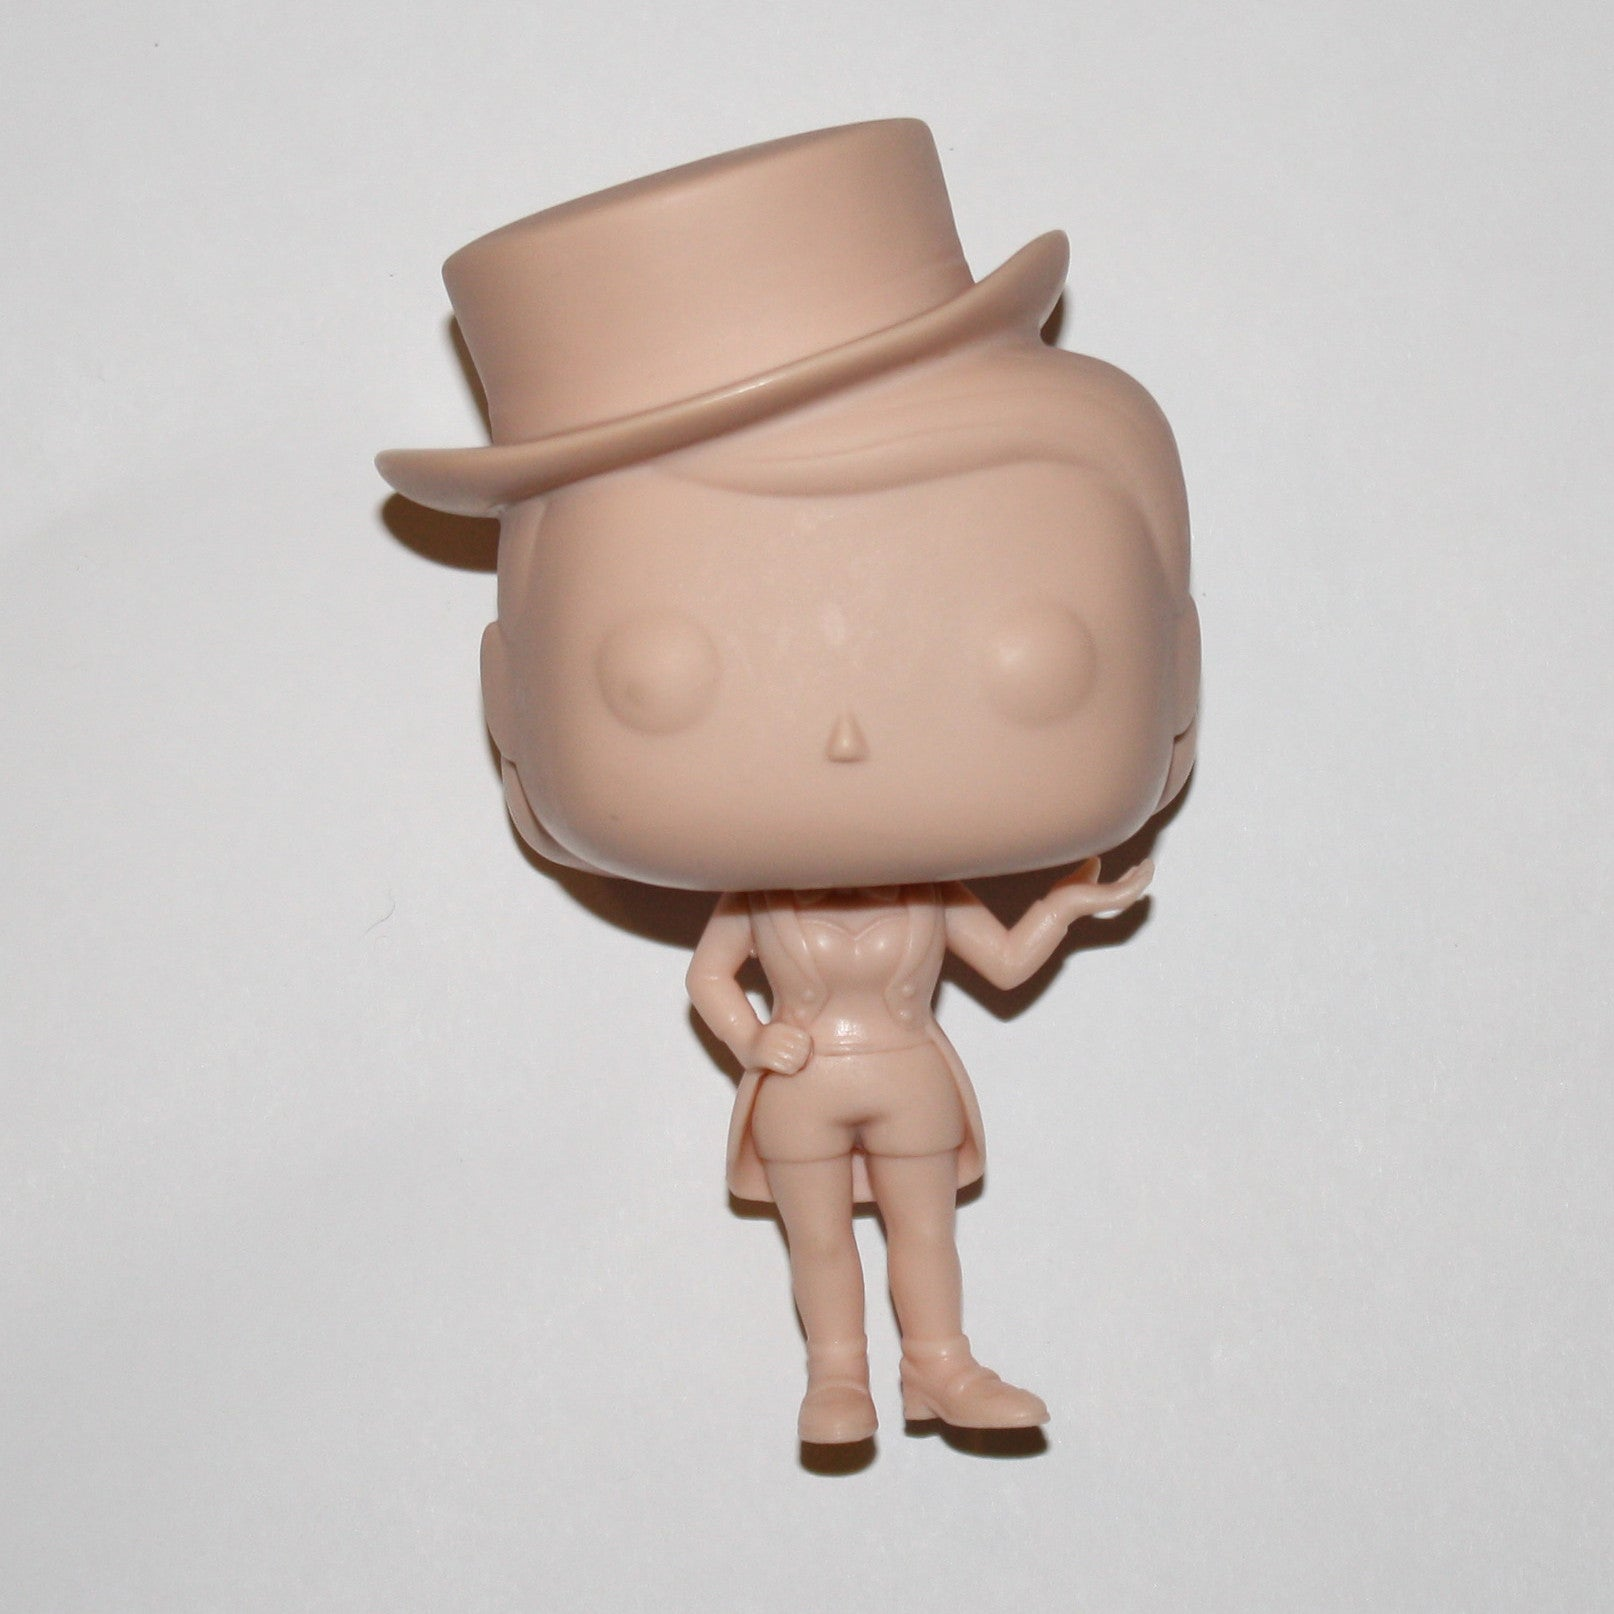 Columbia TAN [Rocky Horror Picture Show] Proto - Fugitive Toys